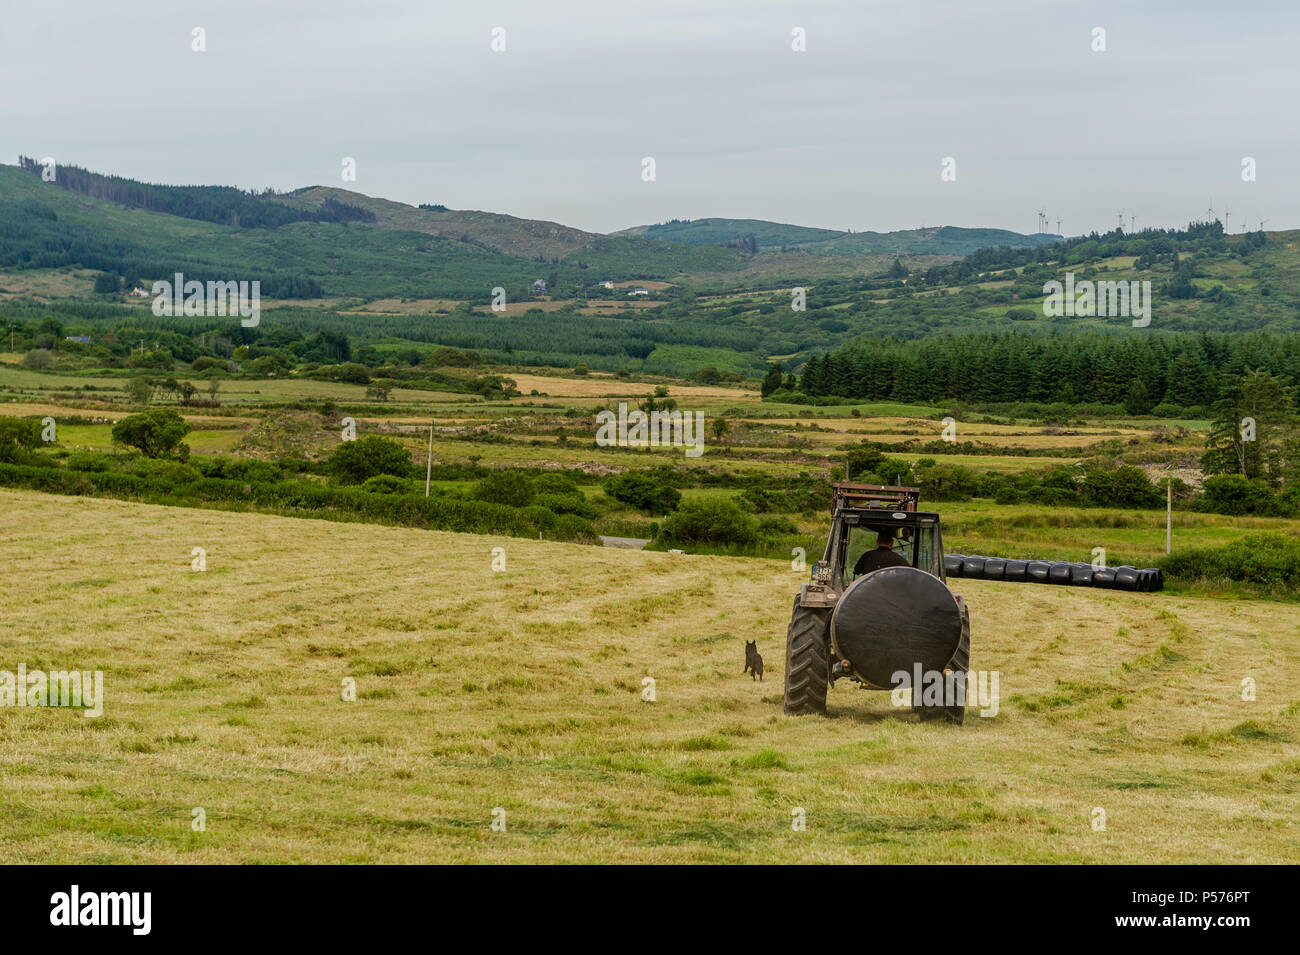 Ballydehob, West Cork, Ireland. 25th June, 2018. Ballydehob farmer Ben Deane and his dog Toby move a silage bail to storage on a very warm day. This is the prelude to a mini-heatwave in which temperatures are set to reach 31° degrees celsius by Thursday this week. Credit: Andy Gibson/Alamy Live News. - Stock Image